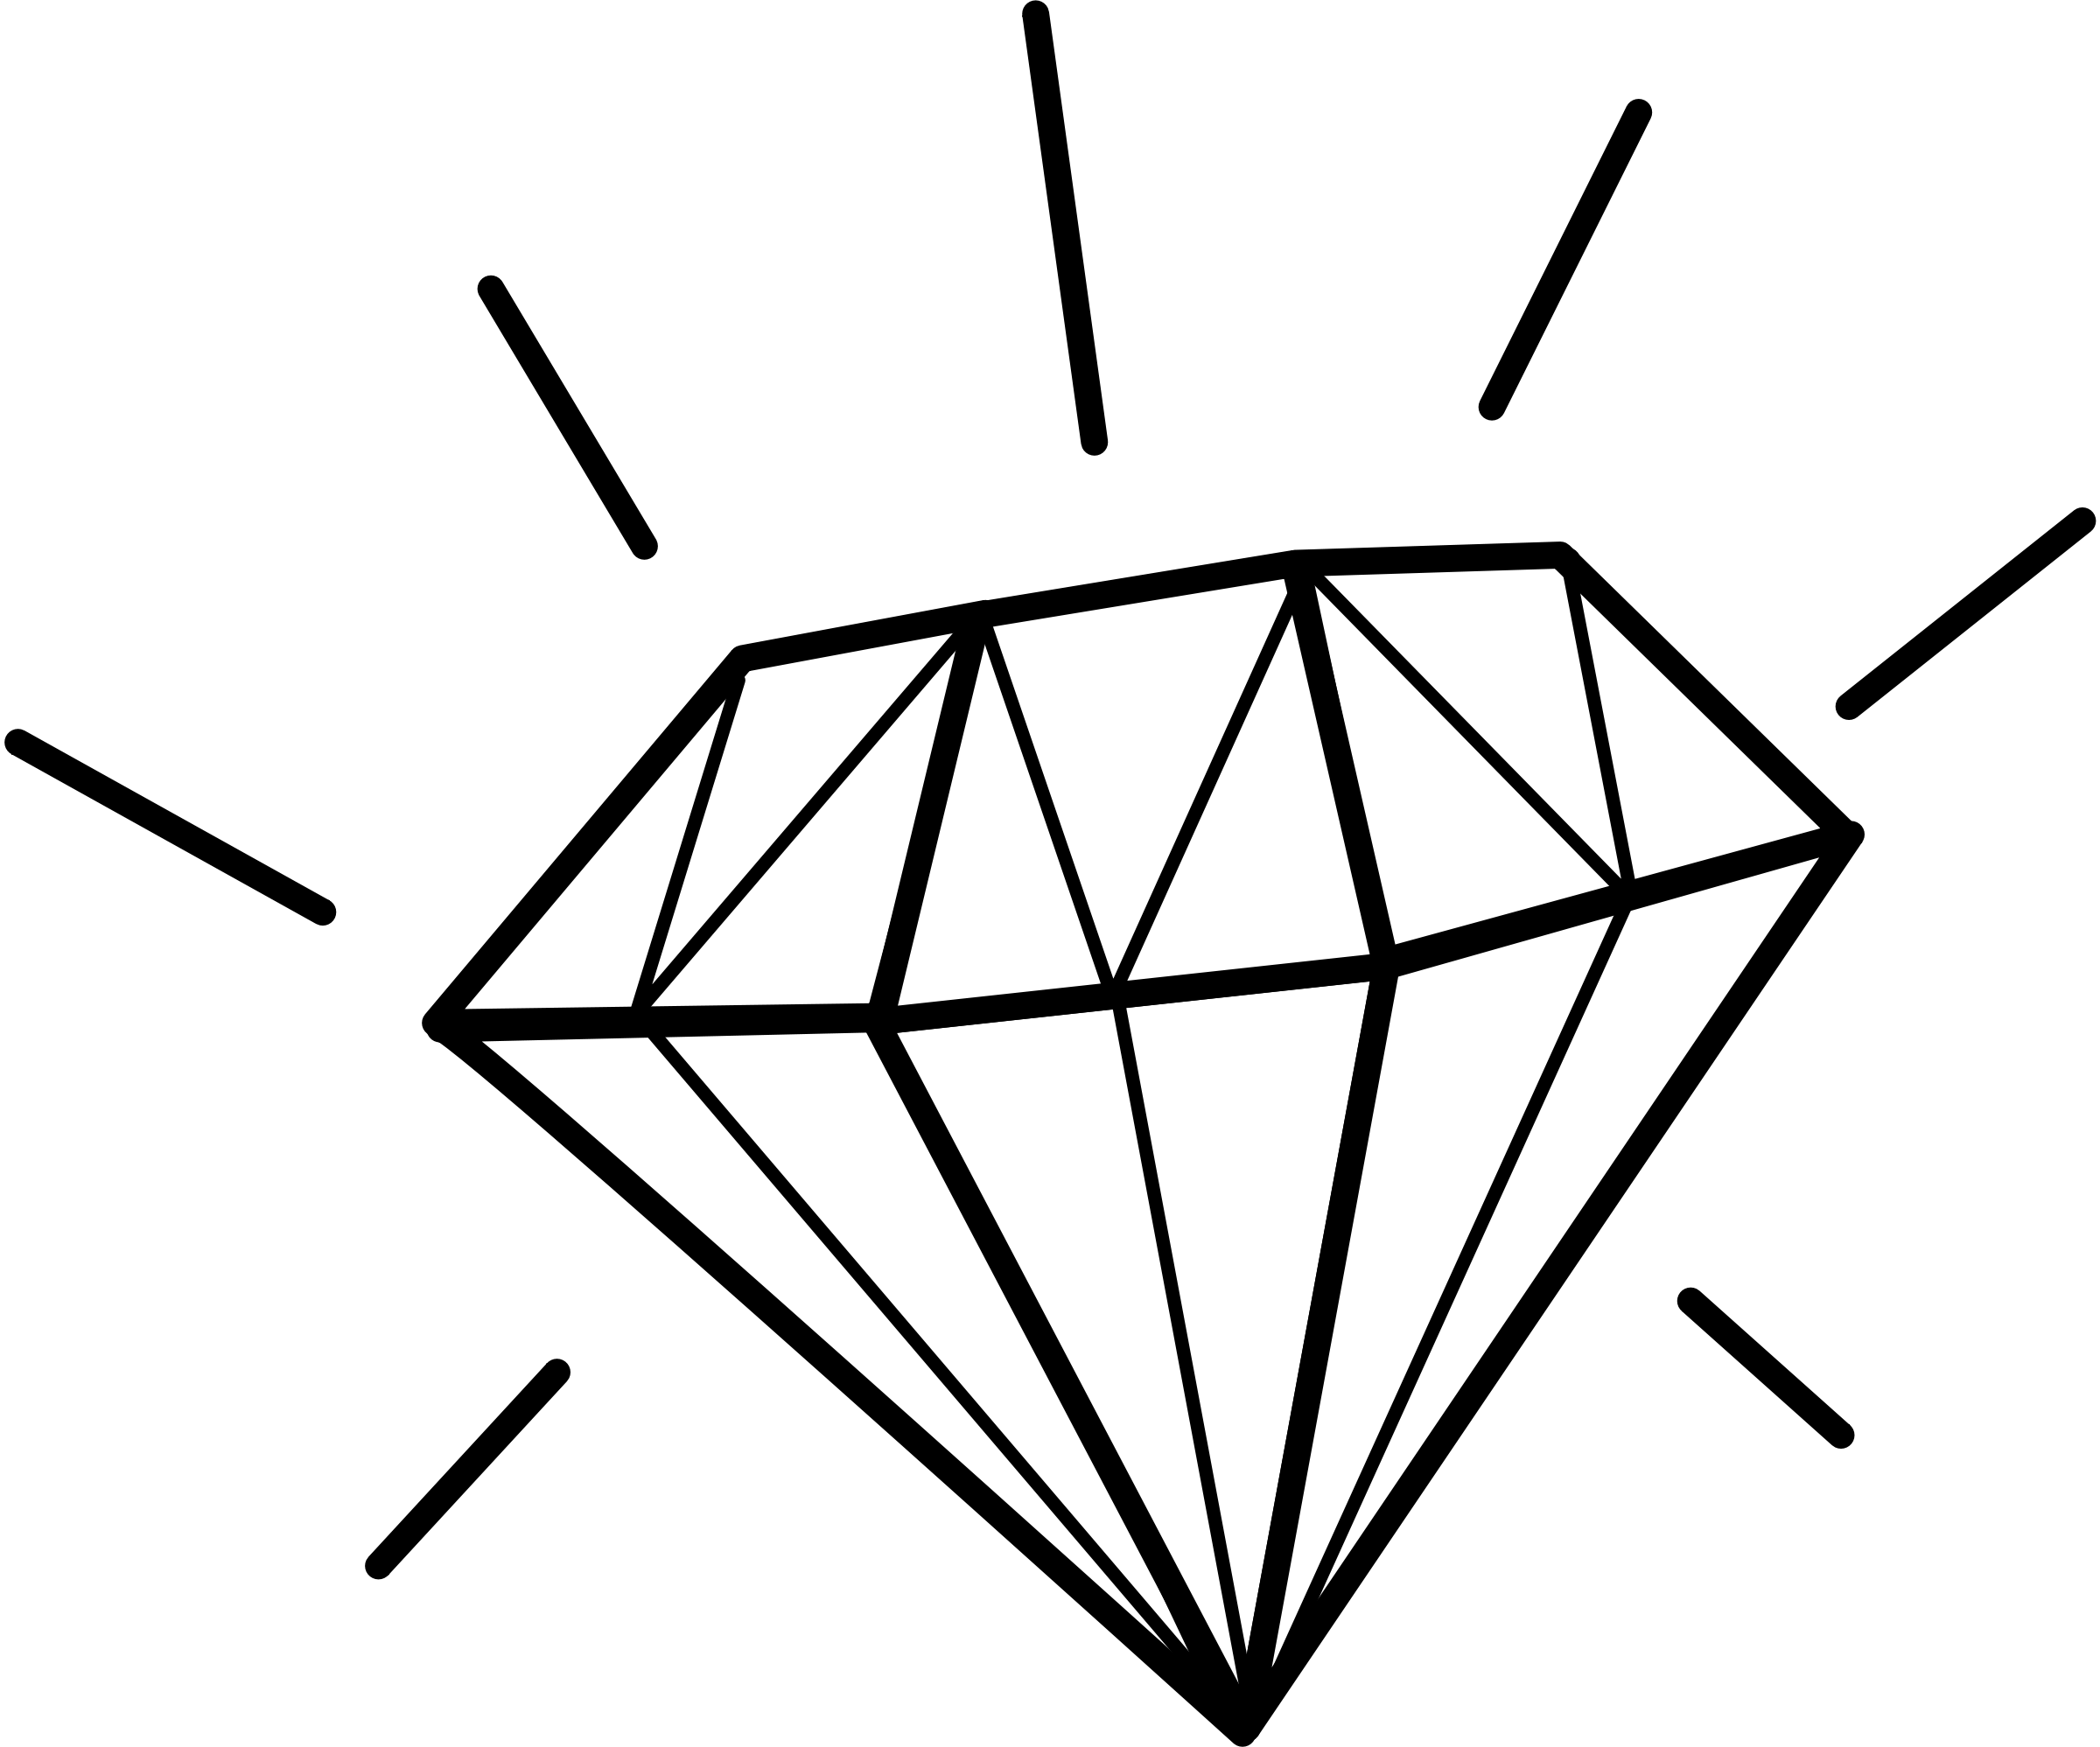 Diamonds clipart #9, Download drawings